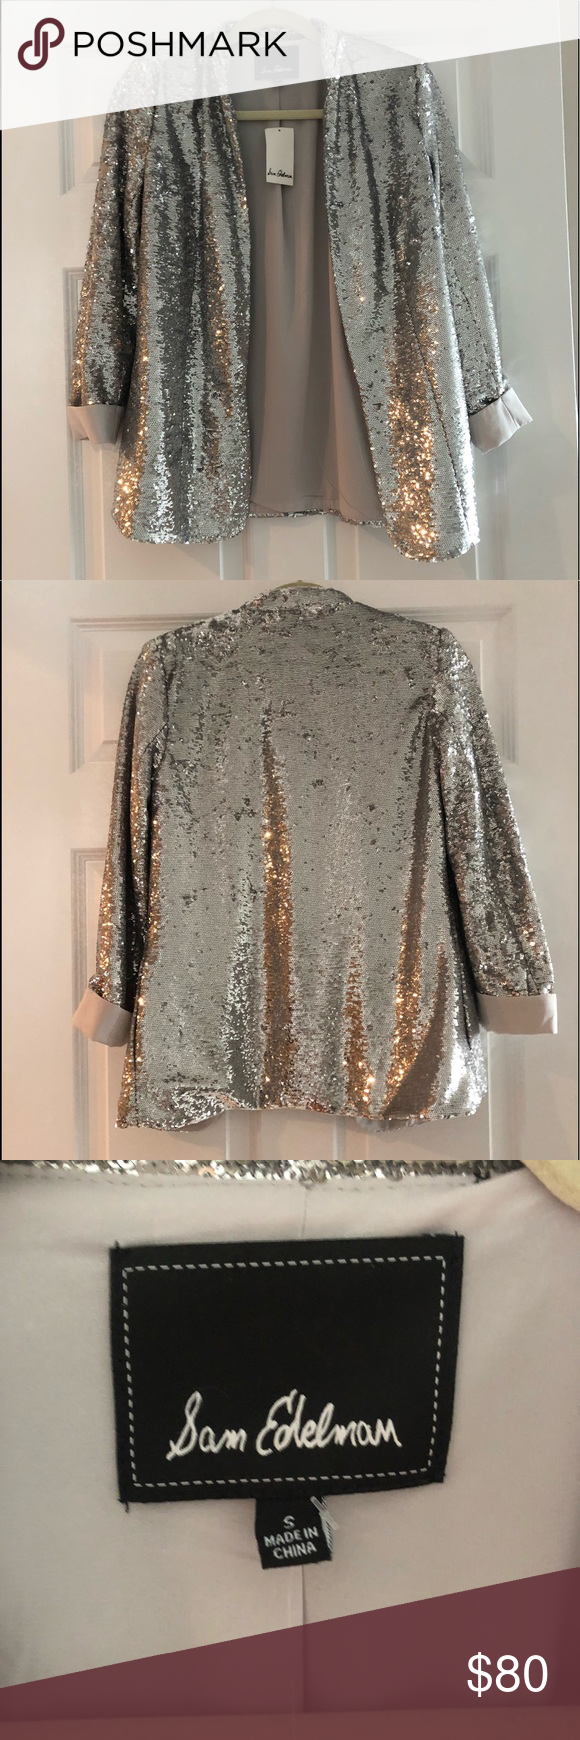 1196d3c32836 Sam Edelman Jacket Brand New NWT Never worn Bought for a new years eve  option and just never wore Silver all over sequins Sam Edelman Jackets &  Coats ...